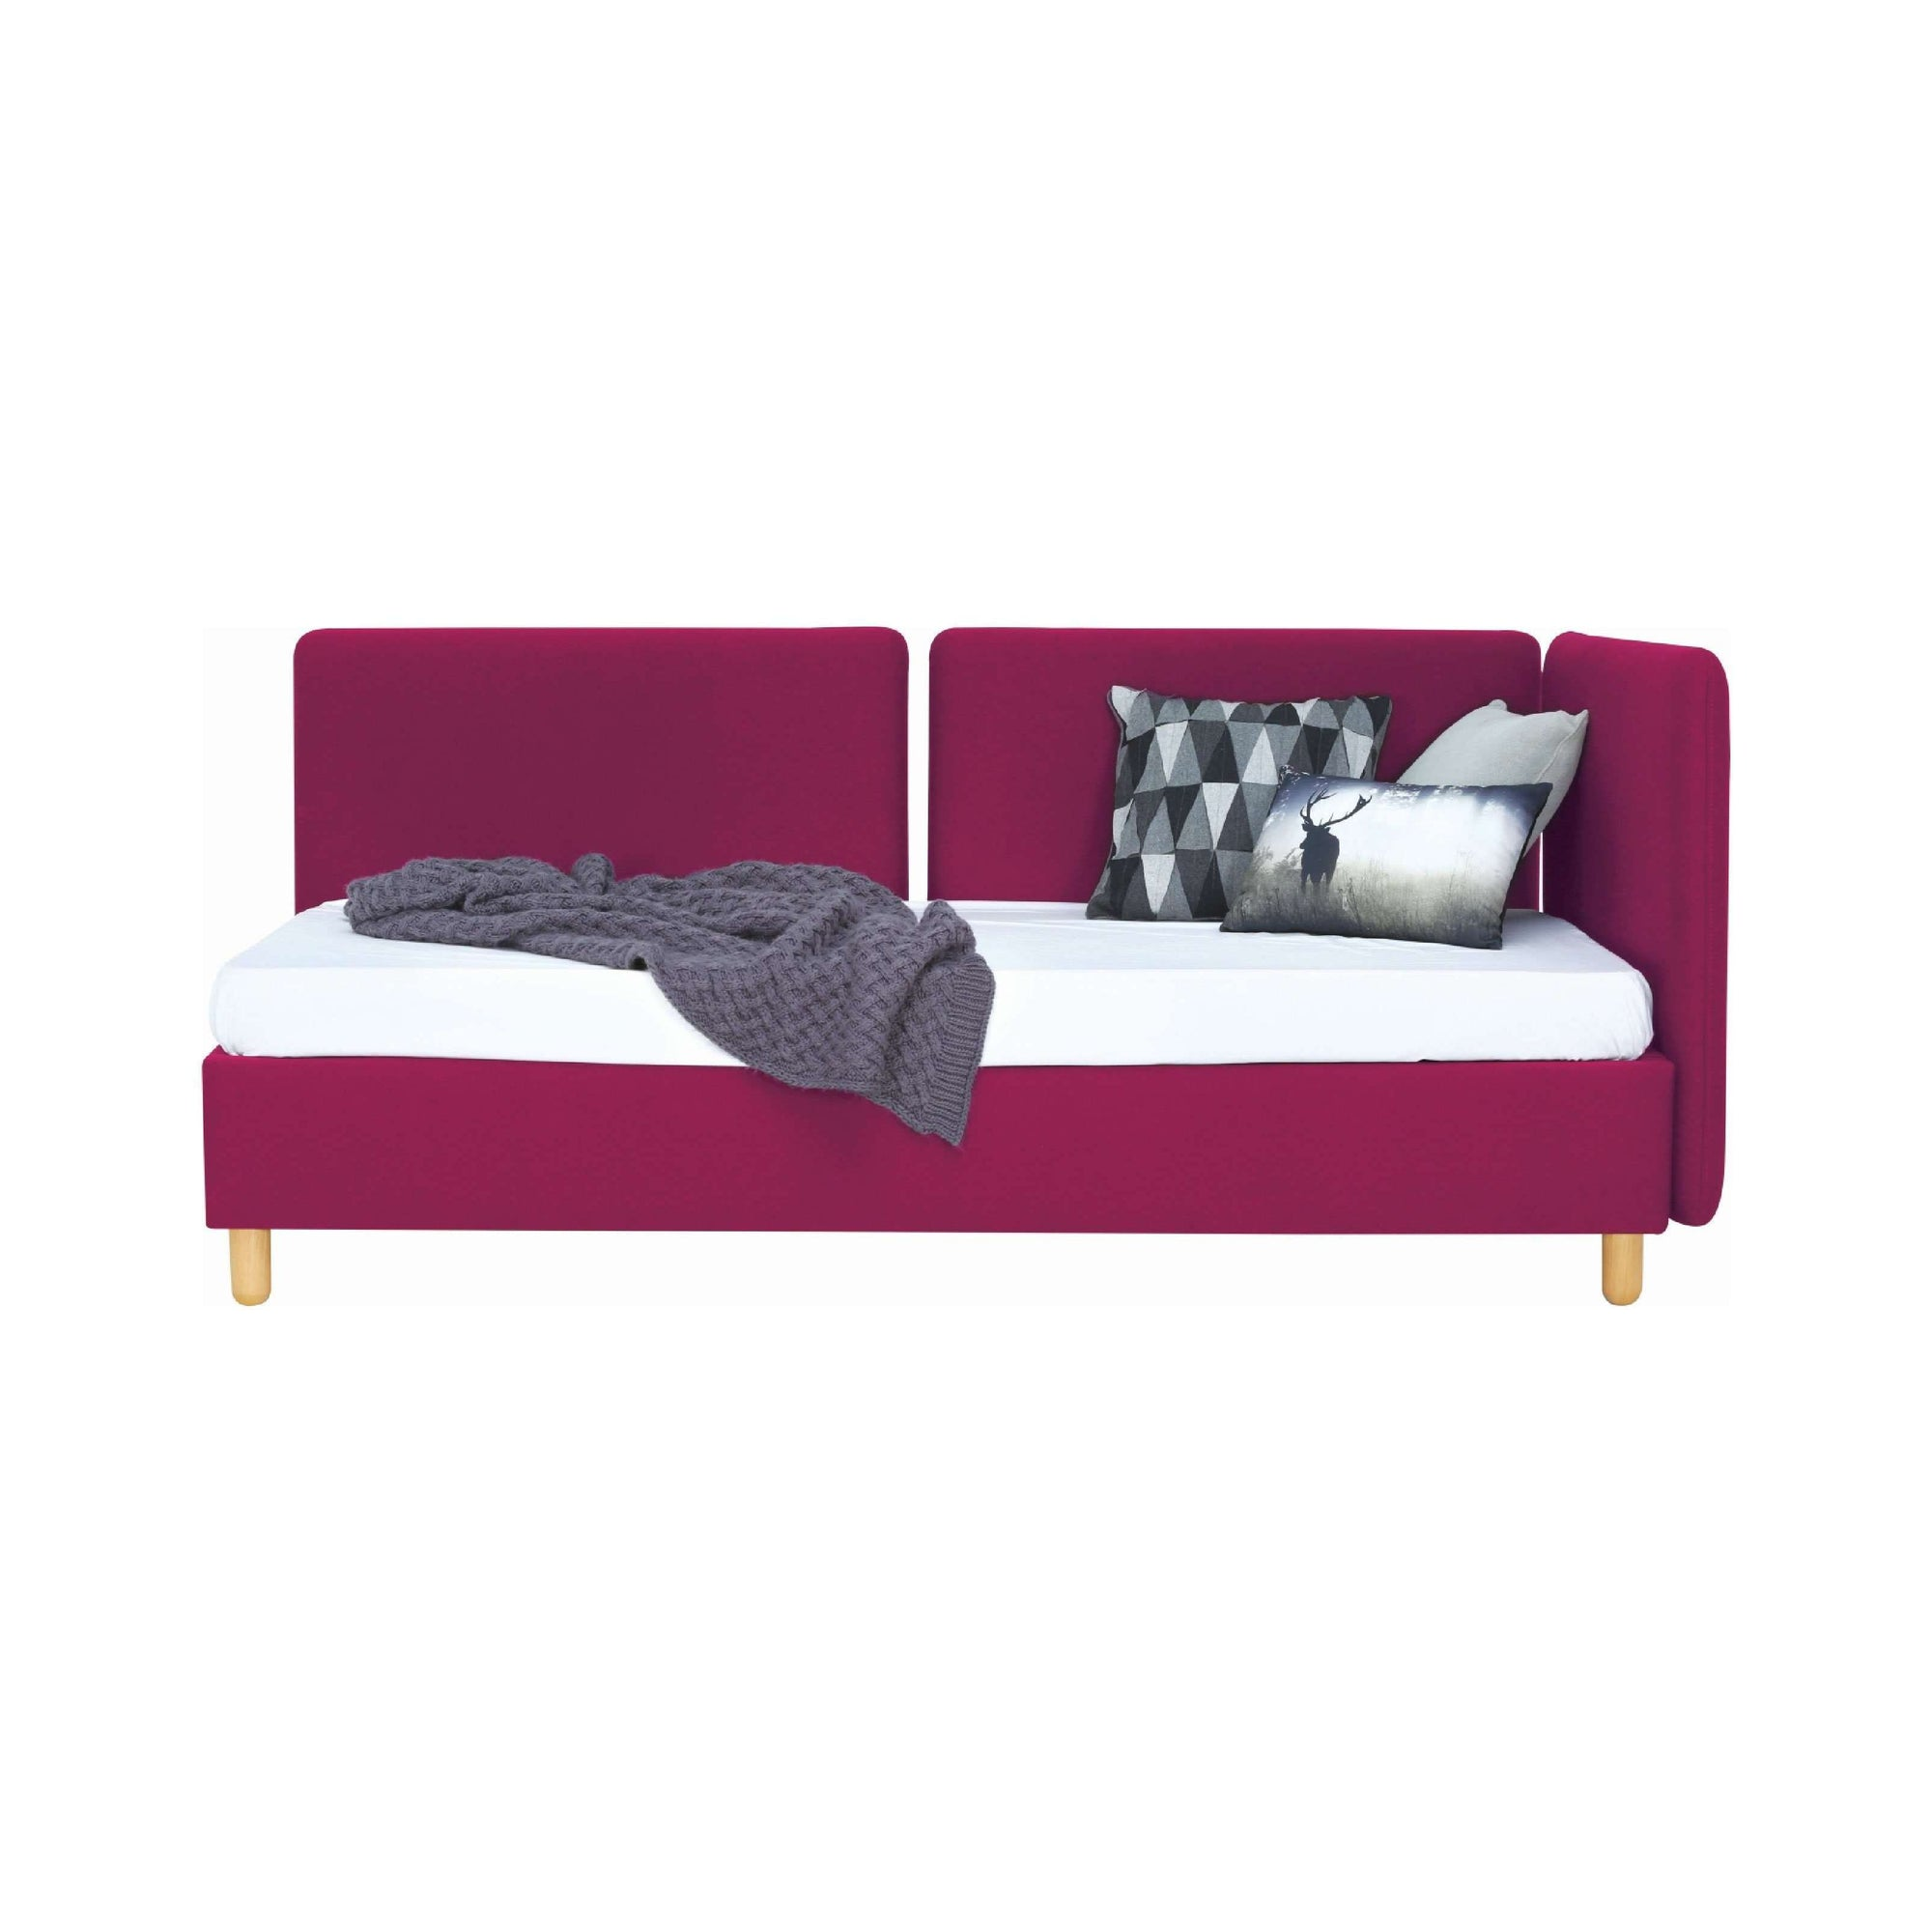 BRISKA Daybed with Ruby Colour Scarlet Fabric